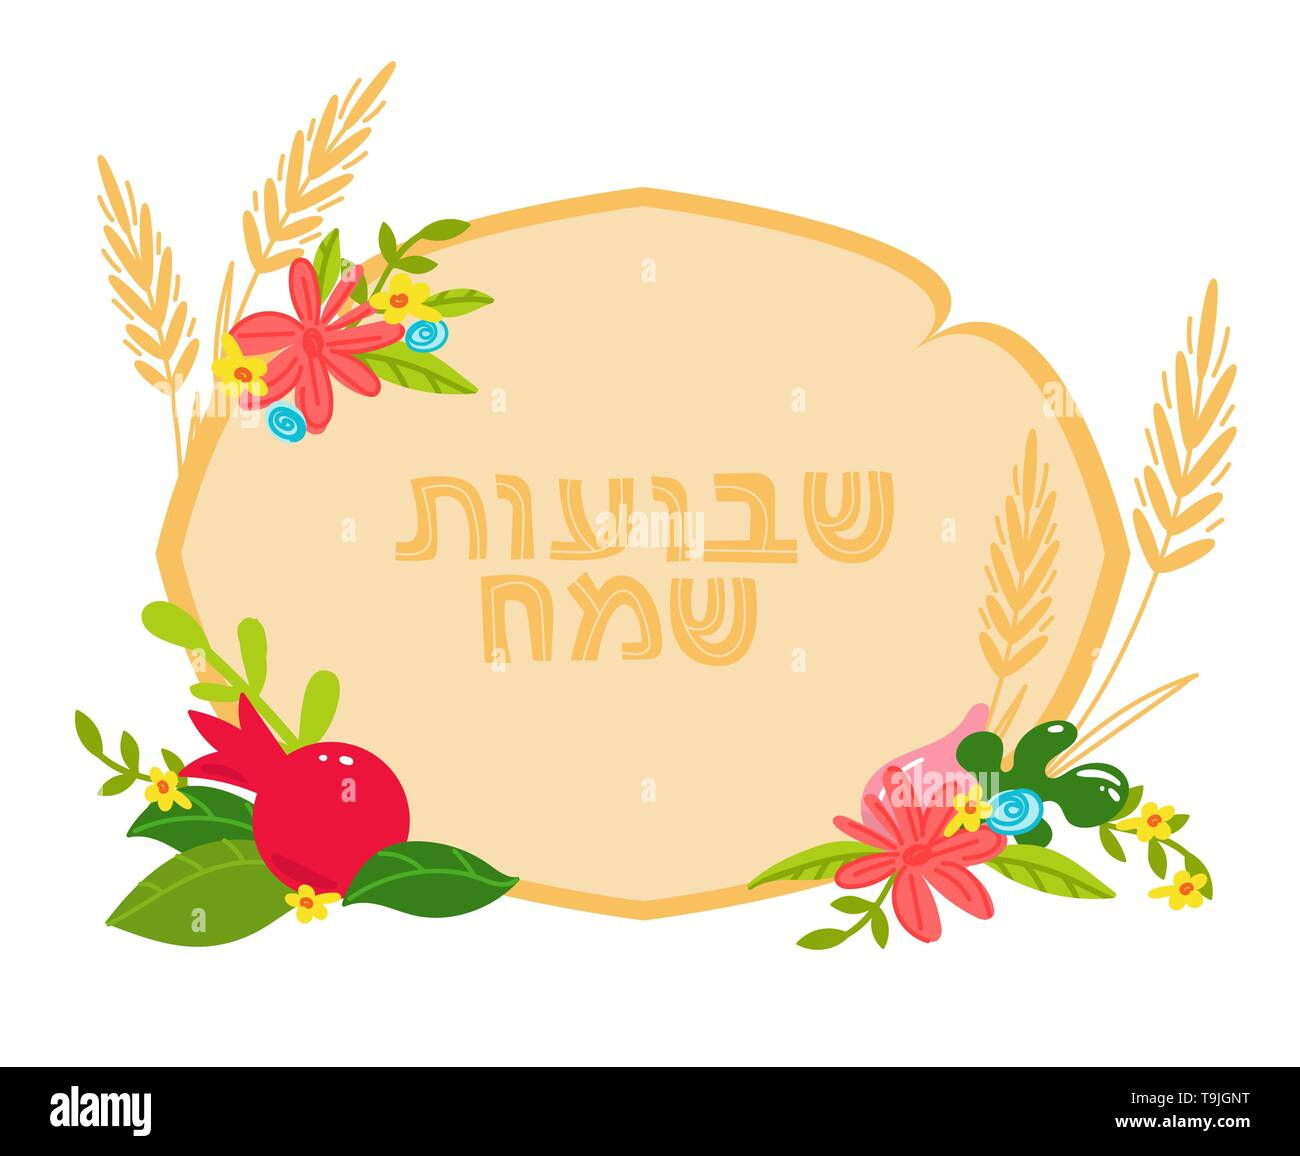 Shavuot - Jewish holiday concept. Fruit basket with pomegranate, grapes, figs and wheat. Frame with text Happy Shavuot on Hebrew. Vector illustration - Stock Vector